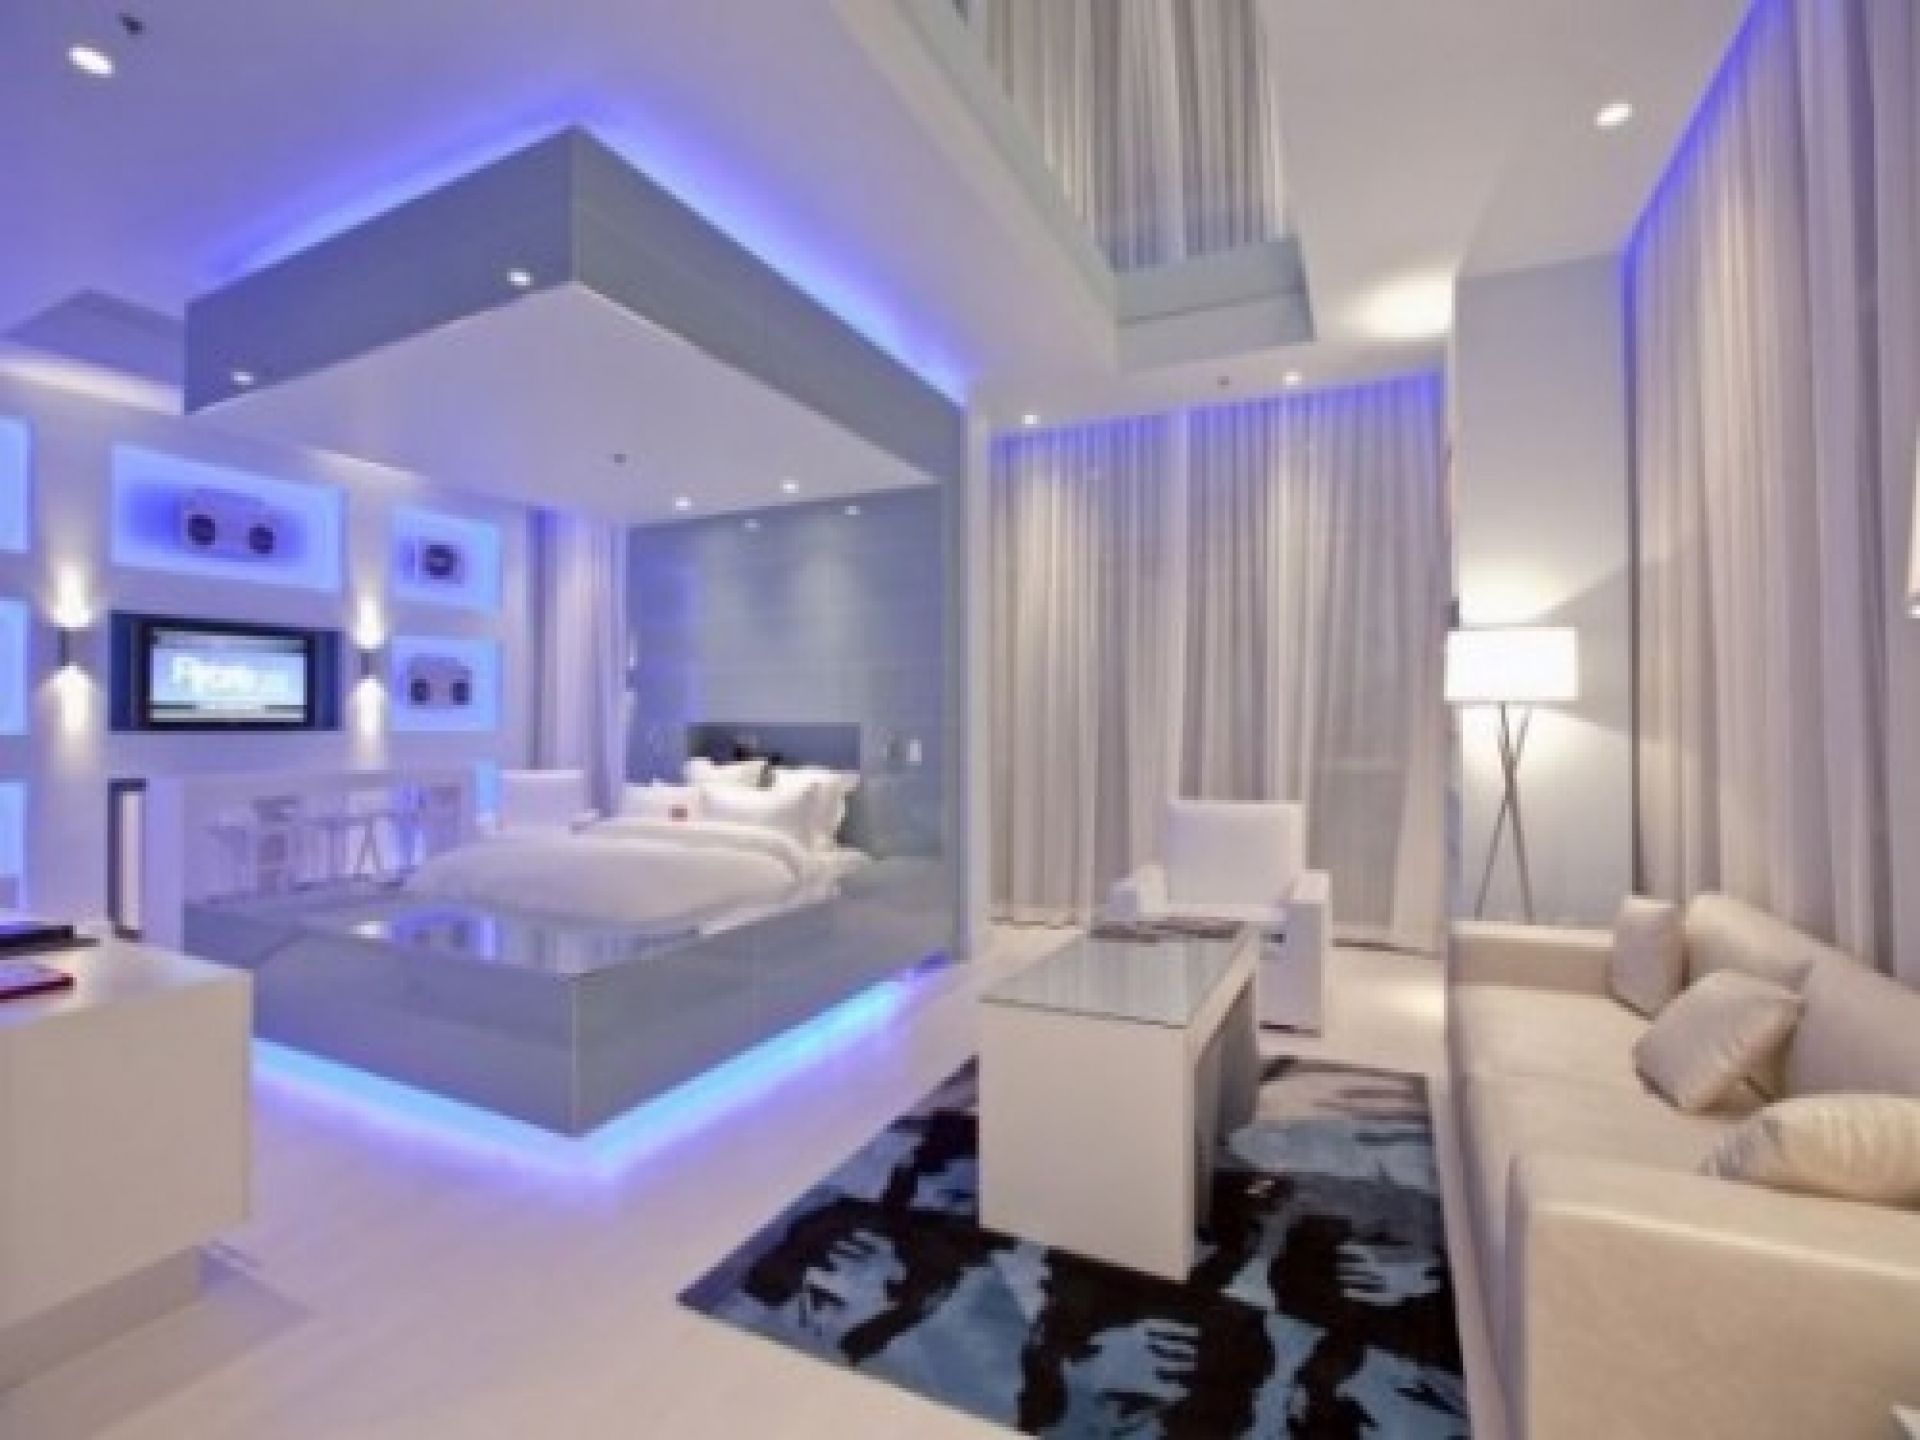 Smart And Nice Decorating Bedroom Ideas For Women Luxury Bedroom Ideas For Women With Modern Platform B Luxurious Bedrooms Futuristic Bedroom Awesome Bedrooms